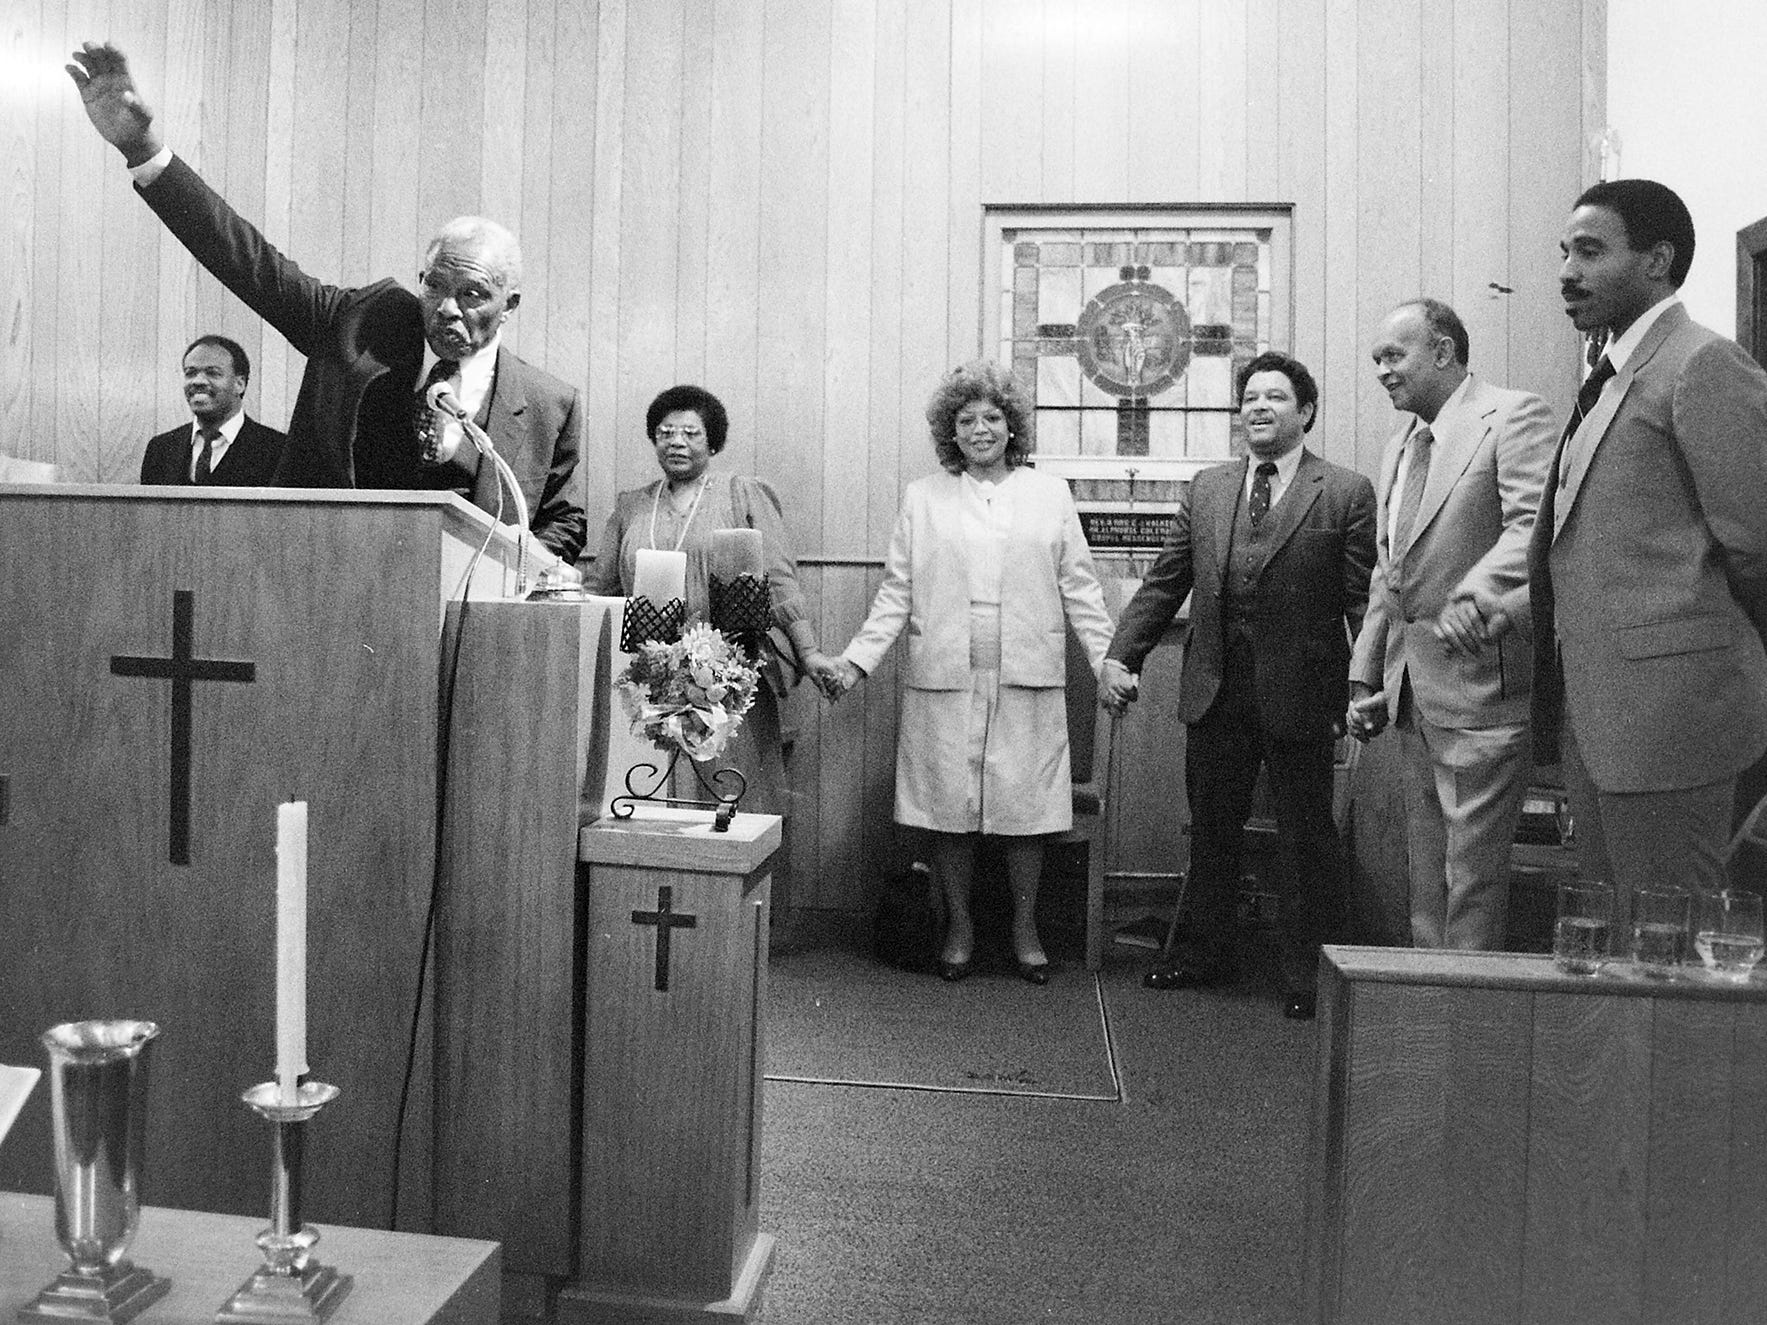 01/20/86